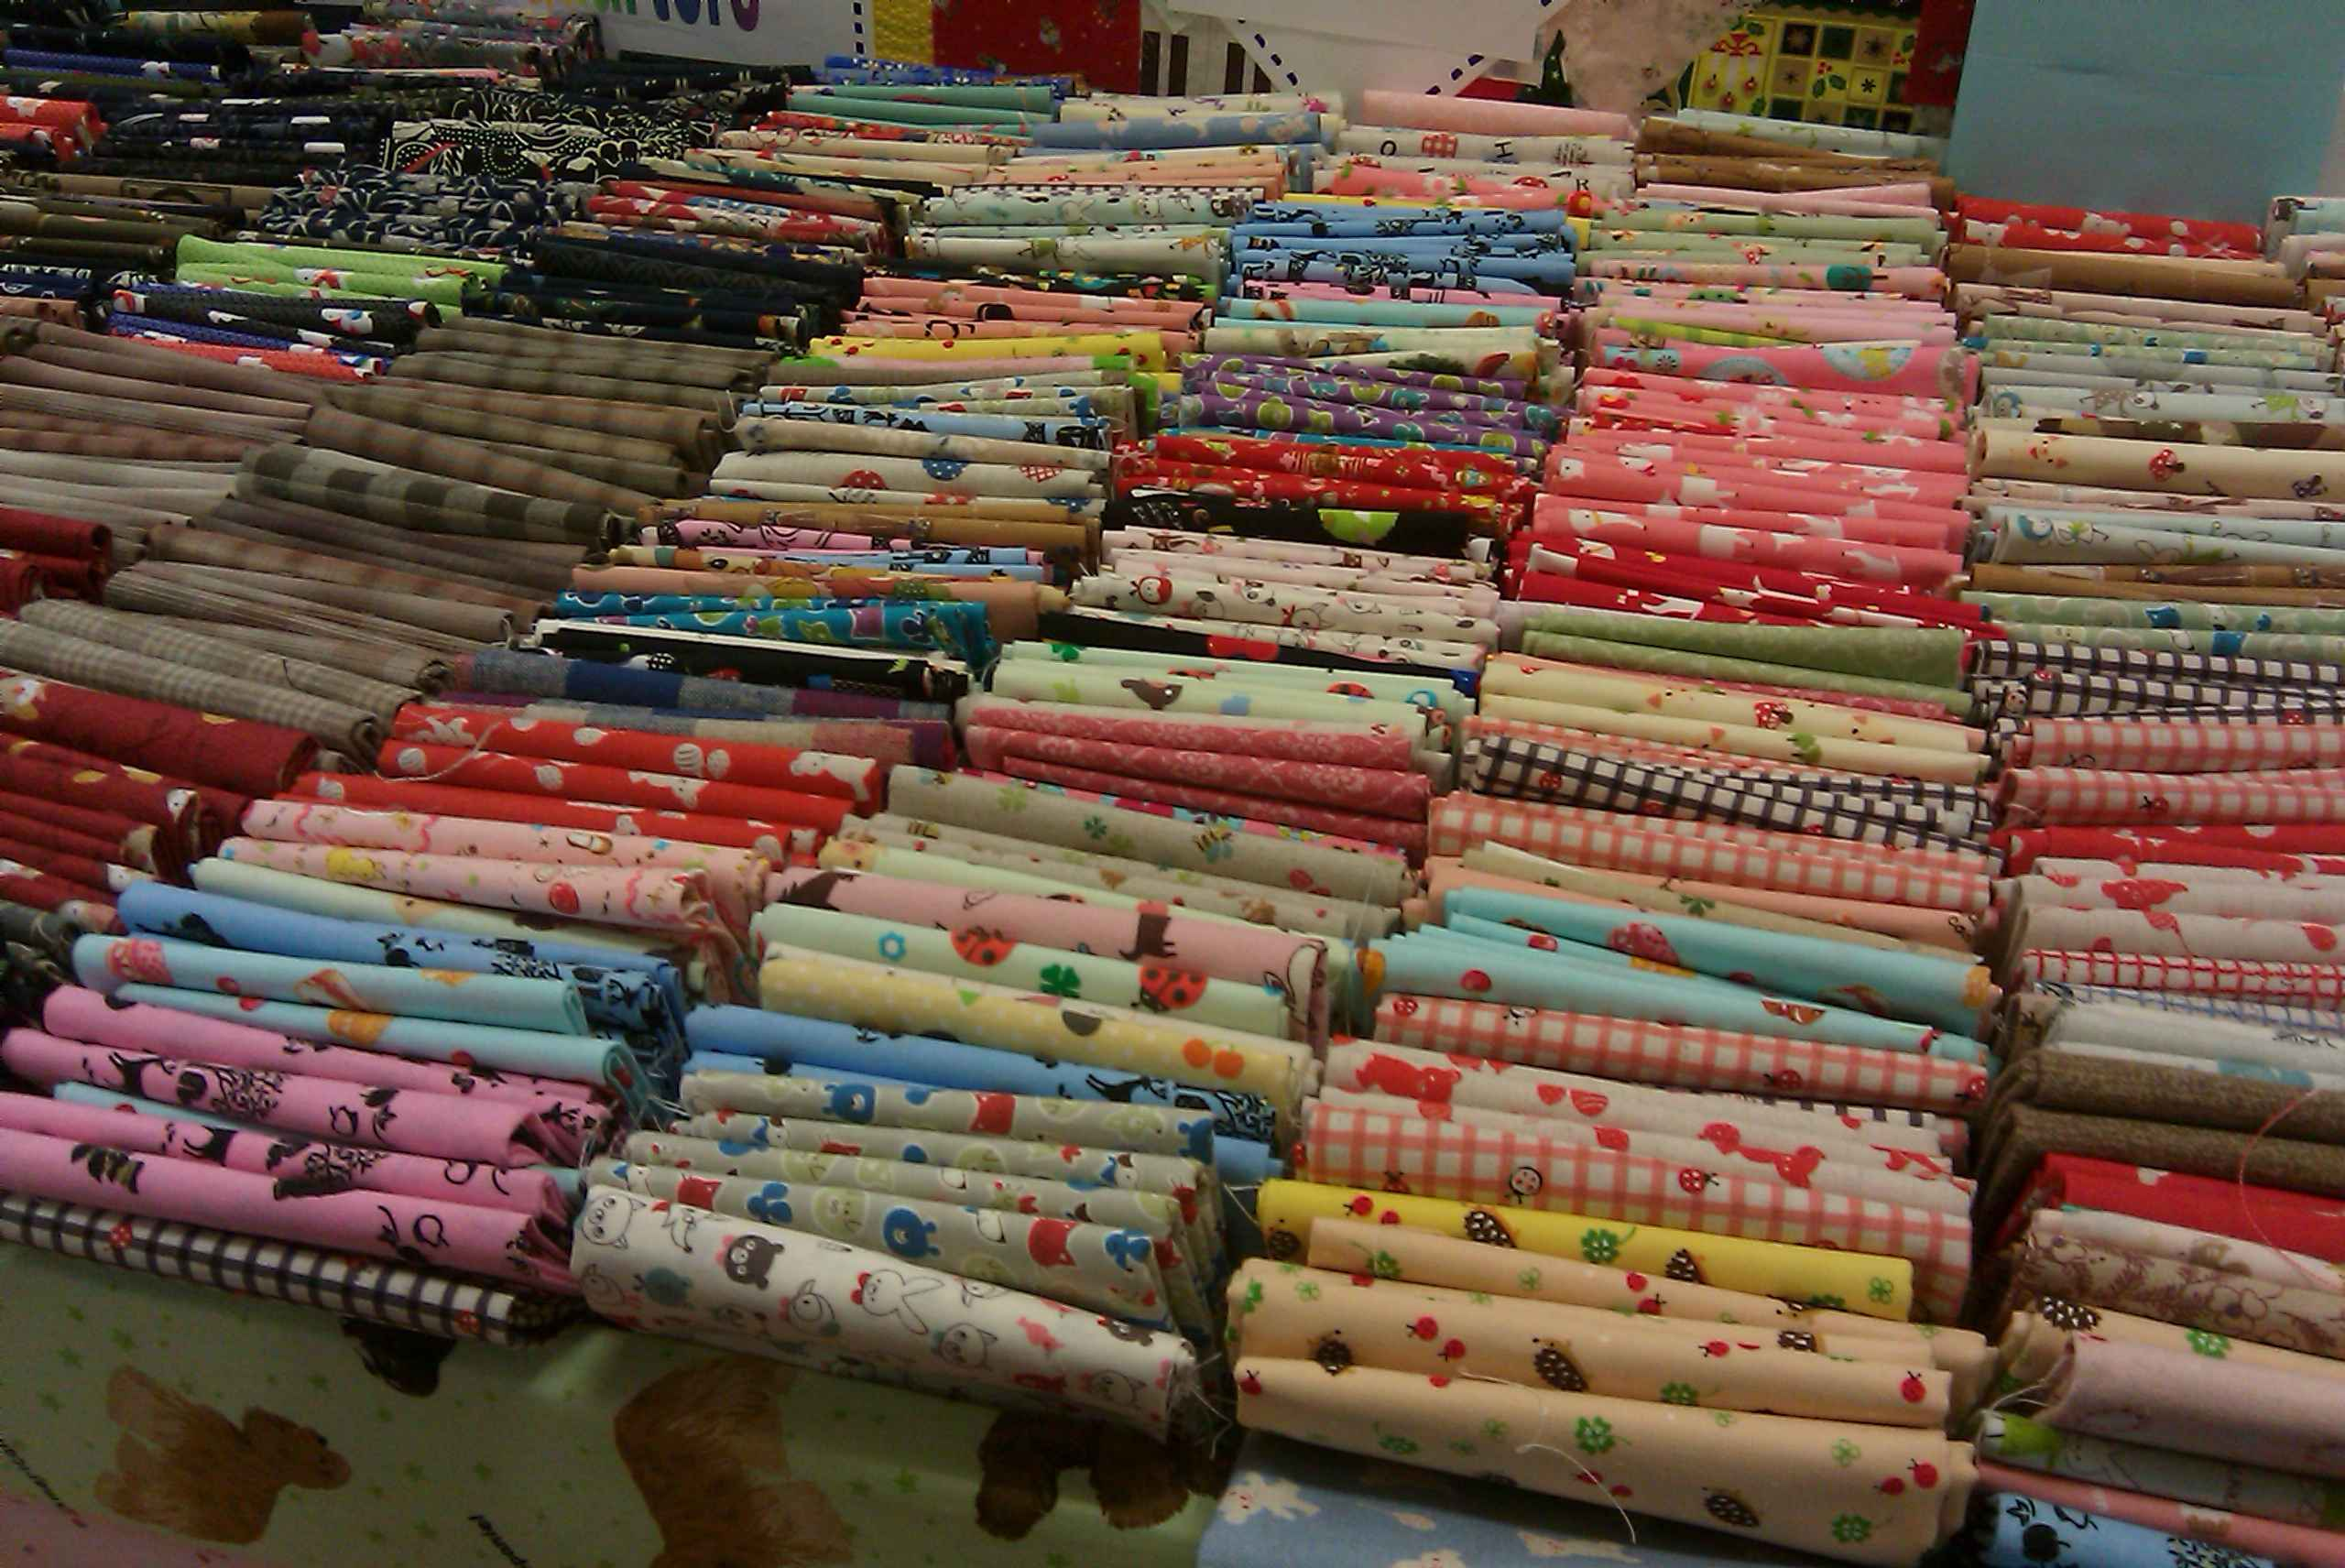 Ems stores for sewing fabrics bing images for Fabric sellers